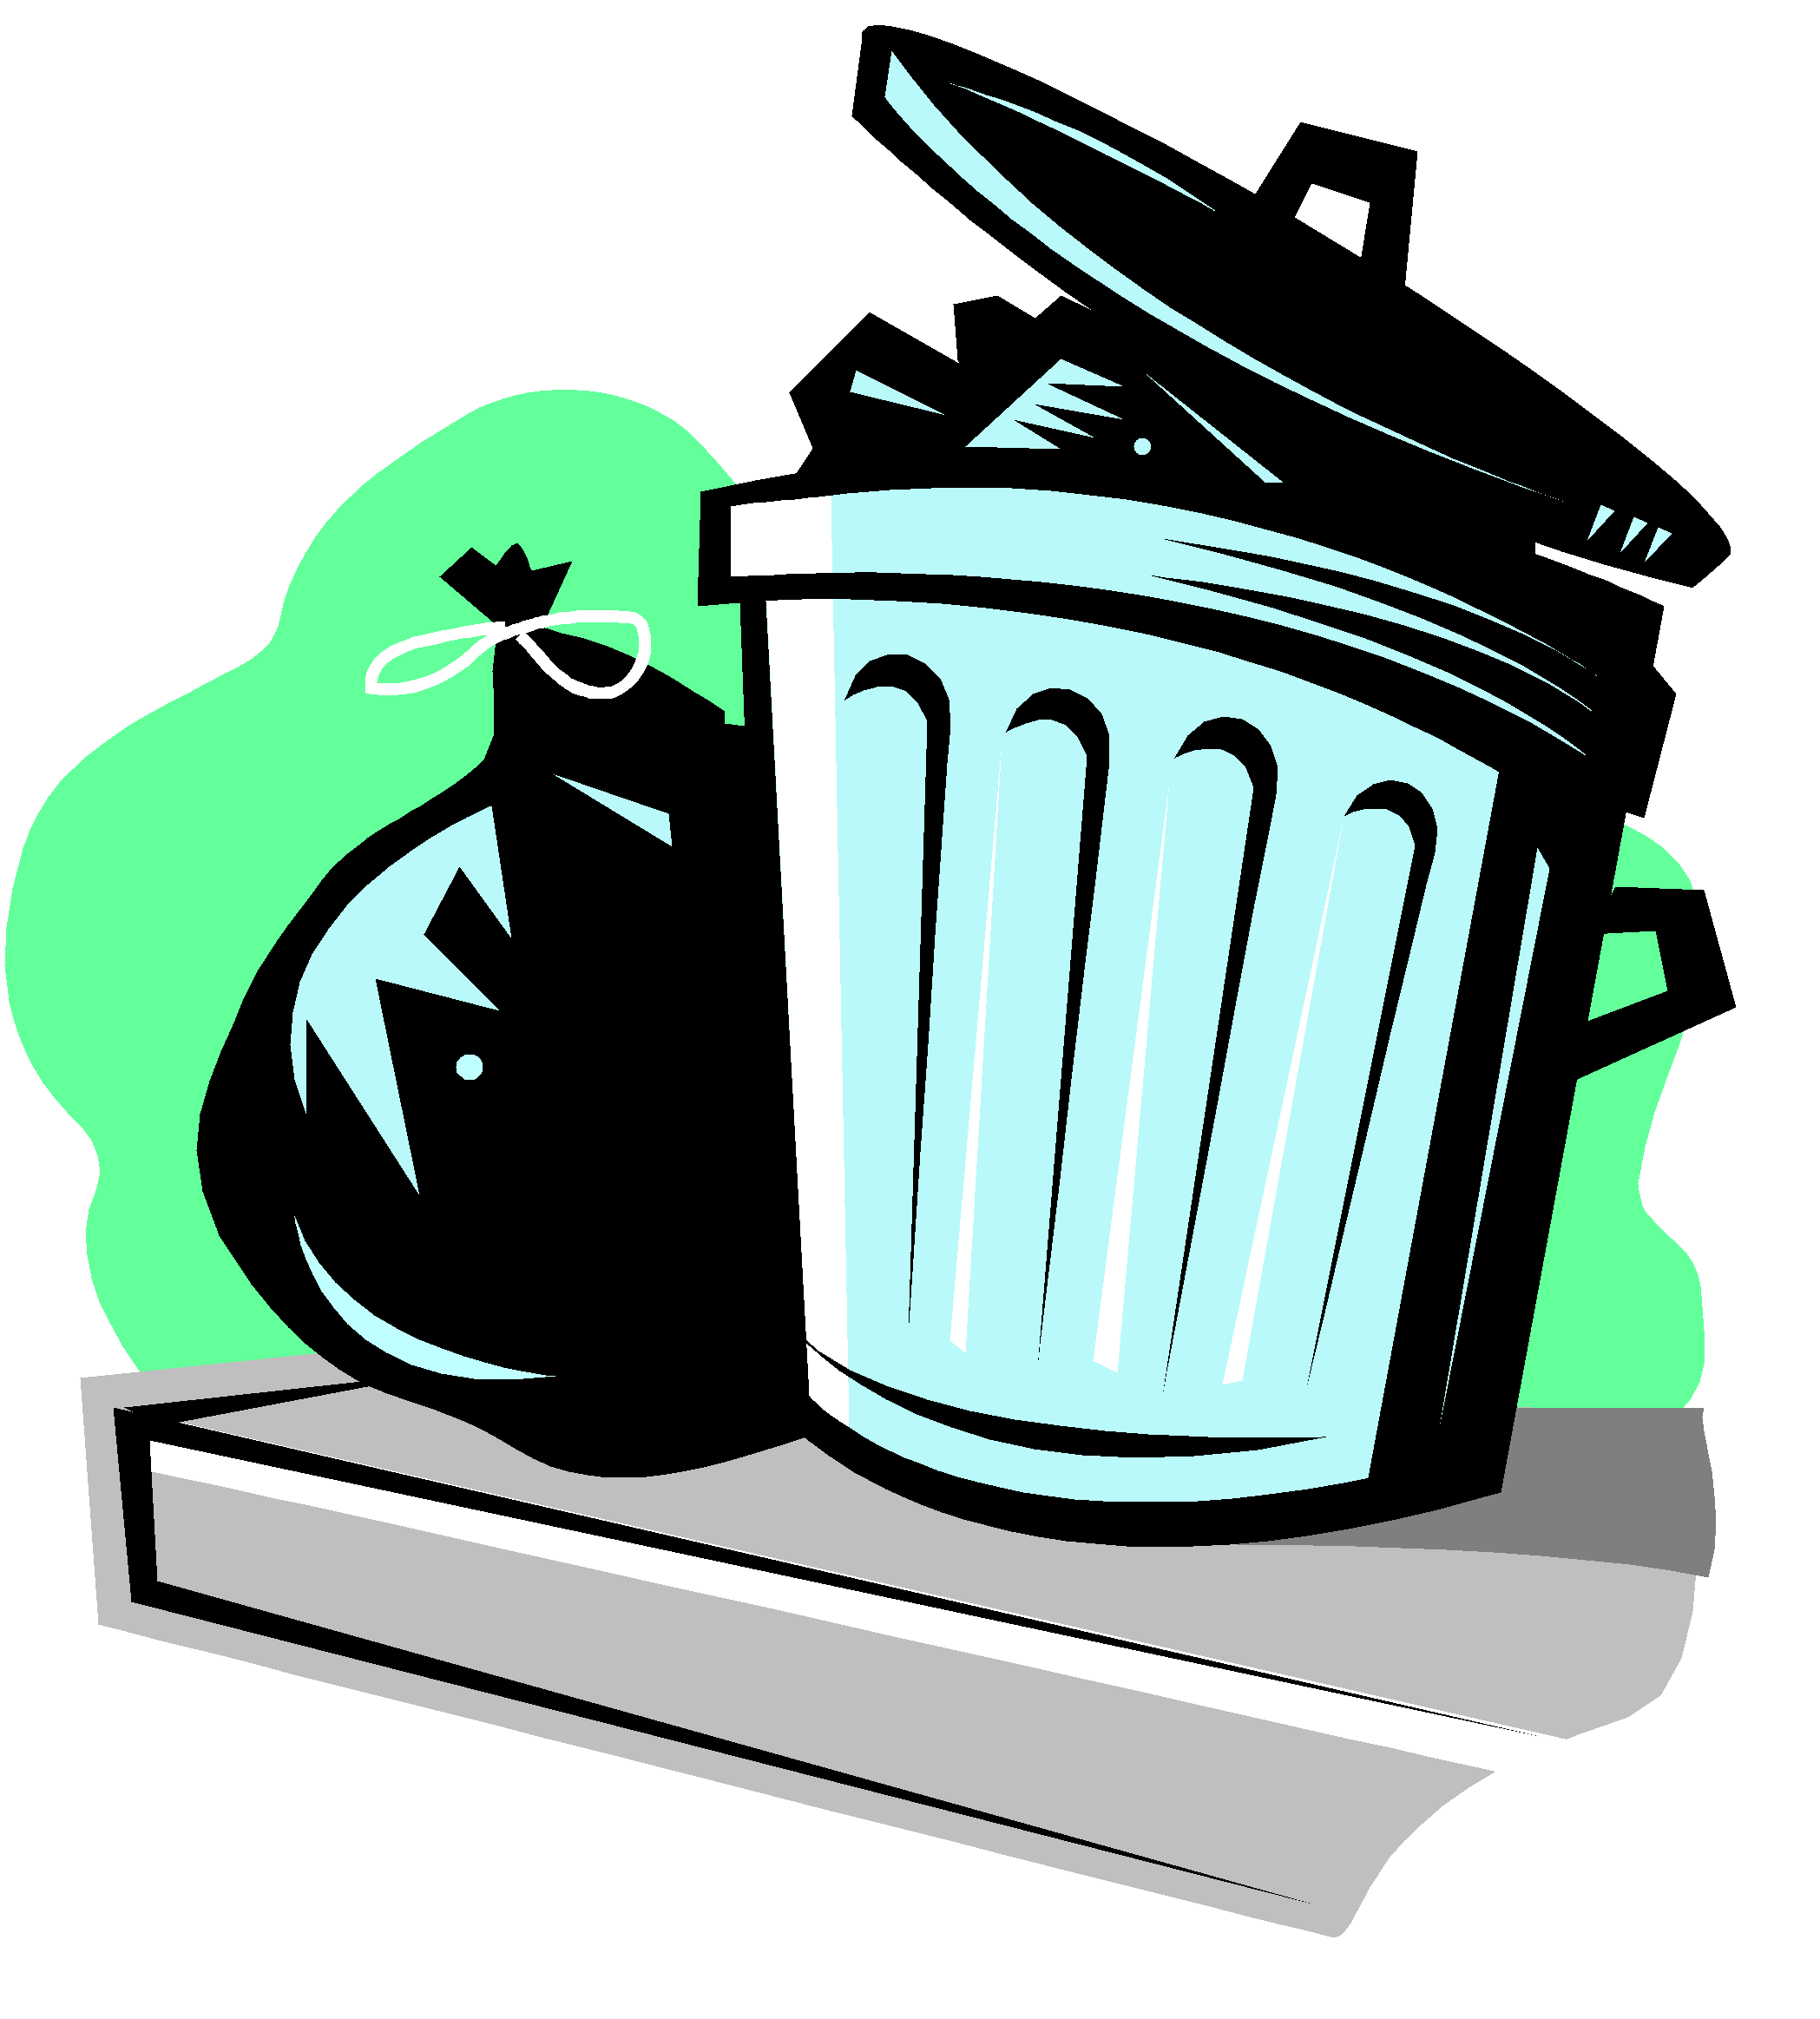 image download Smell garbage transparent free. Trashcan clipart odor.